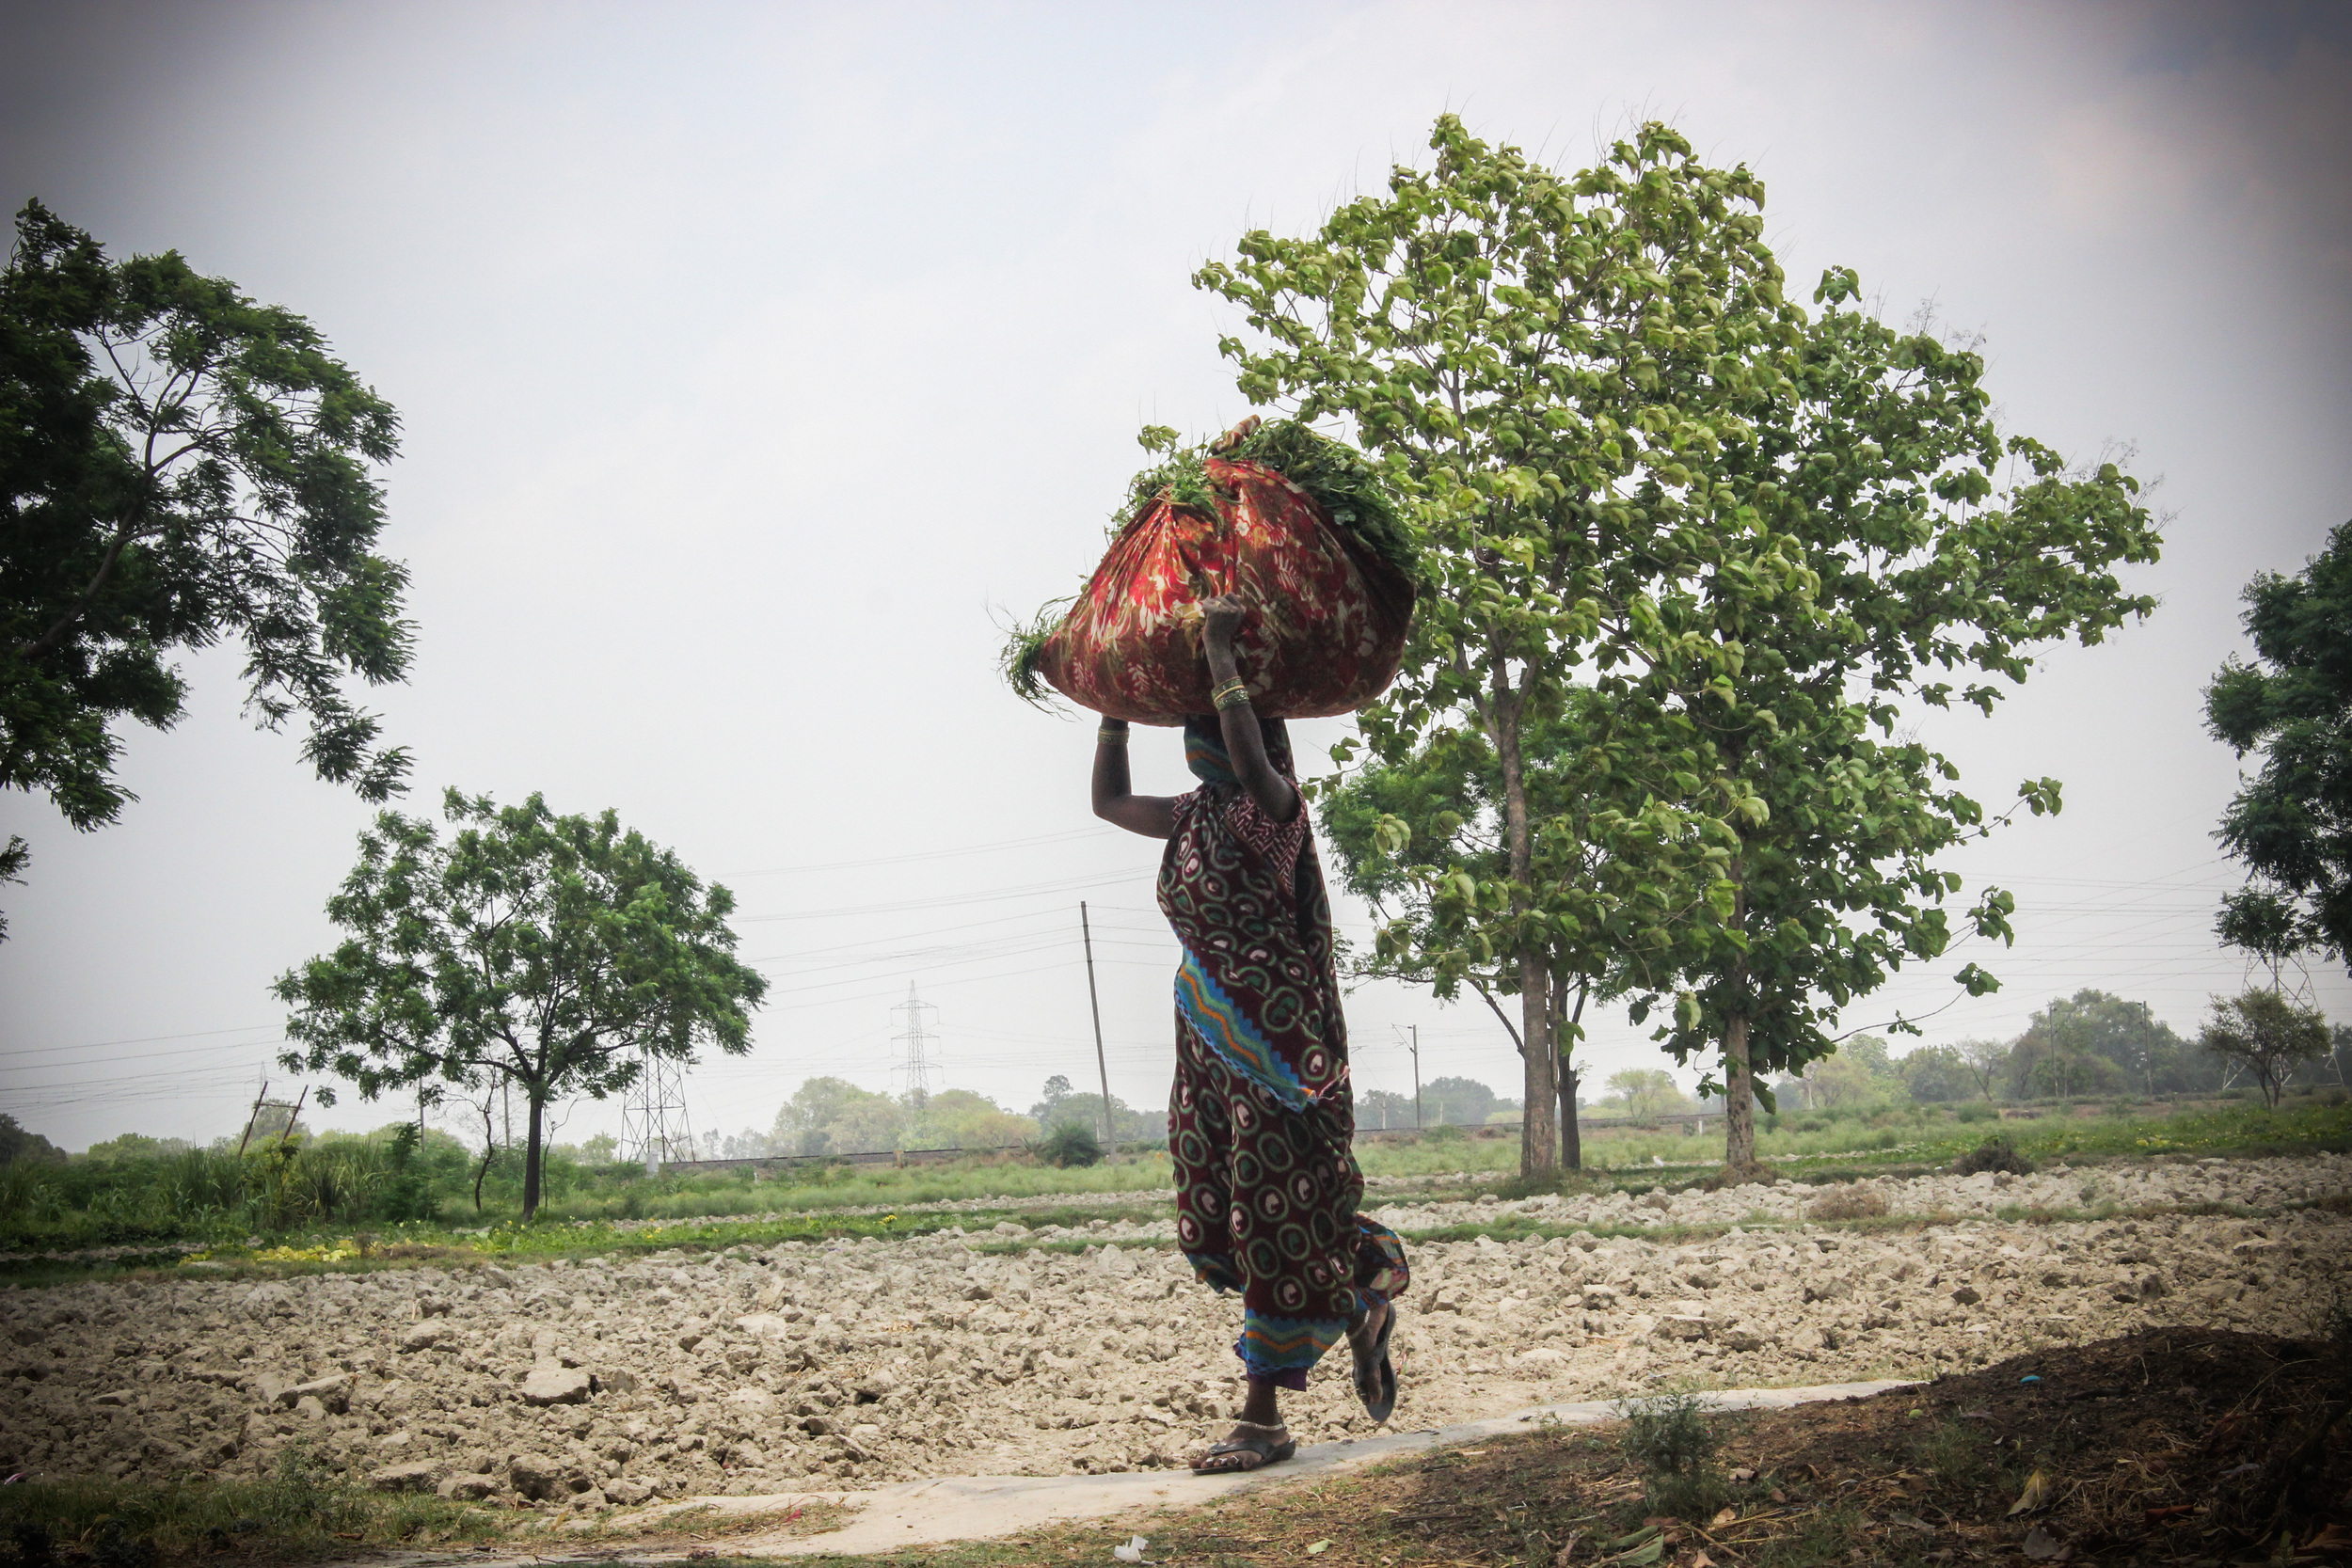 A dramatic depiction of the reality of rural Indian women: this woman is responsible for carrying her harvest home, walking past the meeting as she carriesa heavy load home.